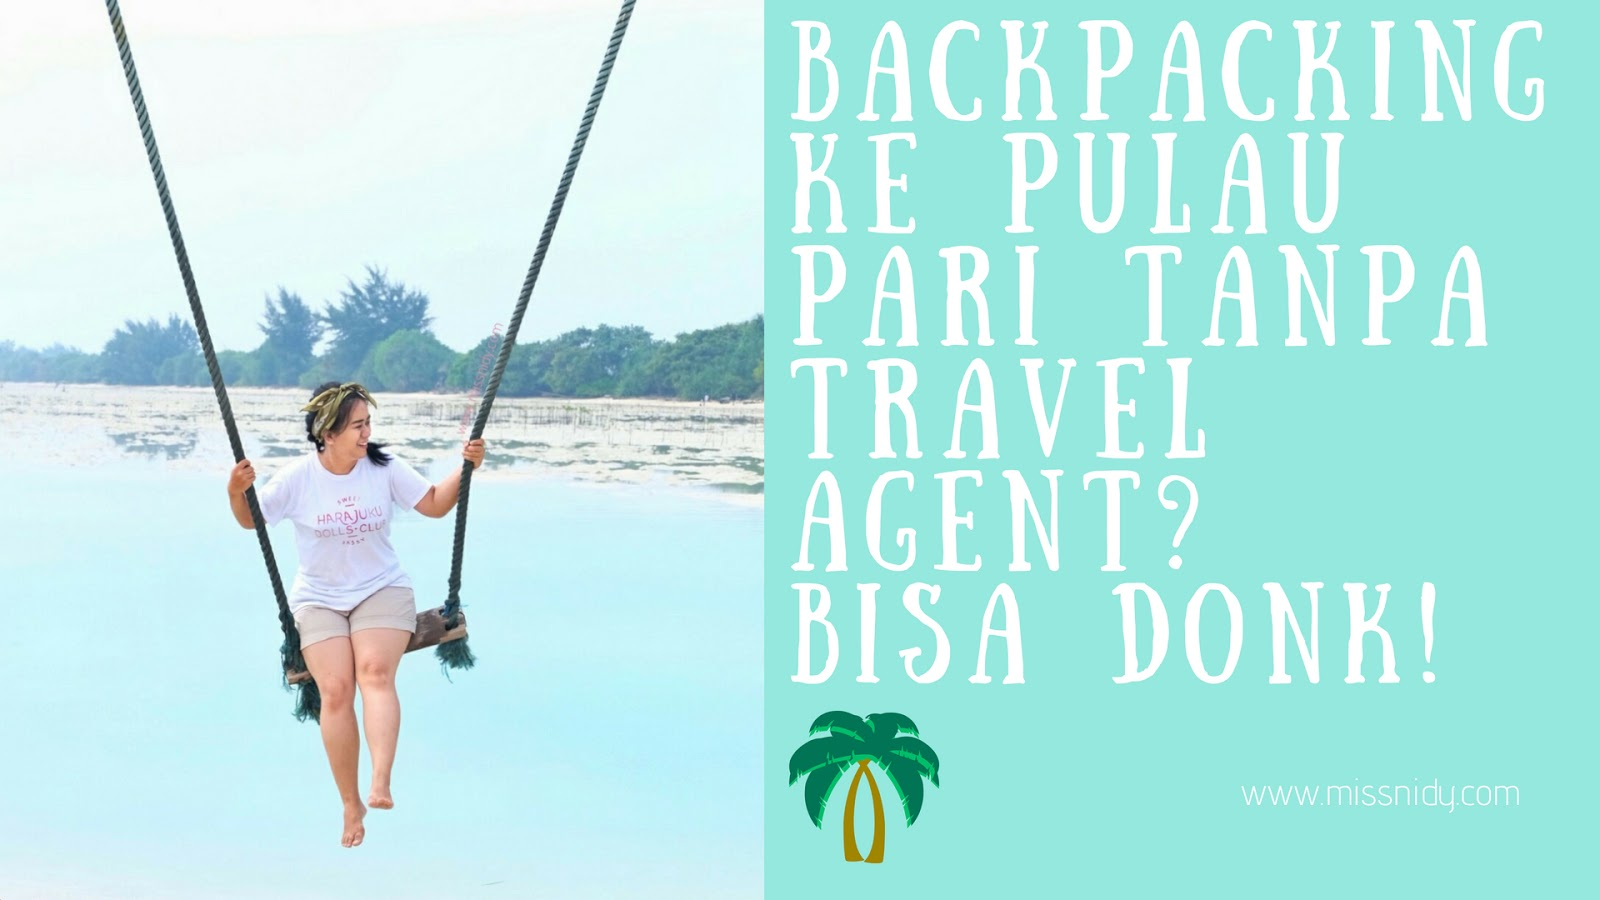 backpacking ke pulau pari tanpa travel agent